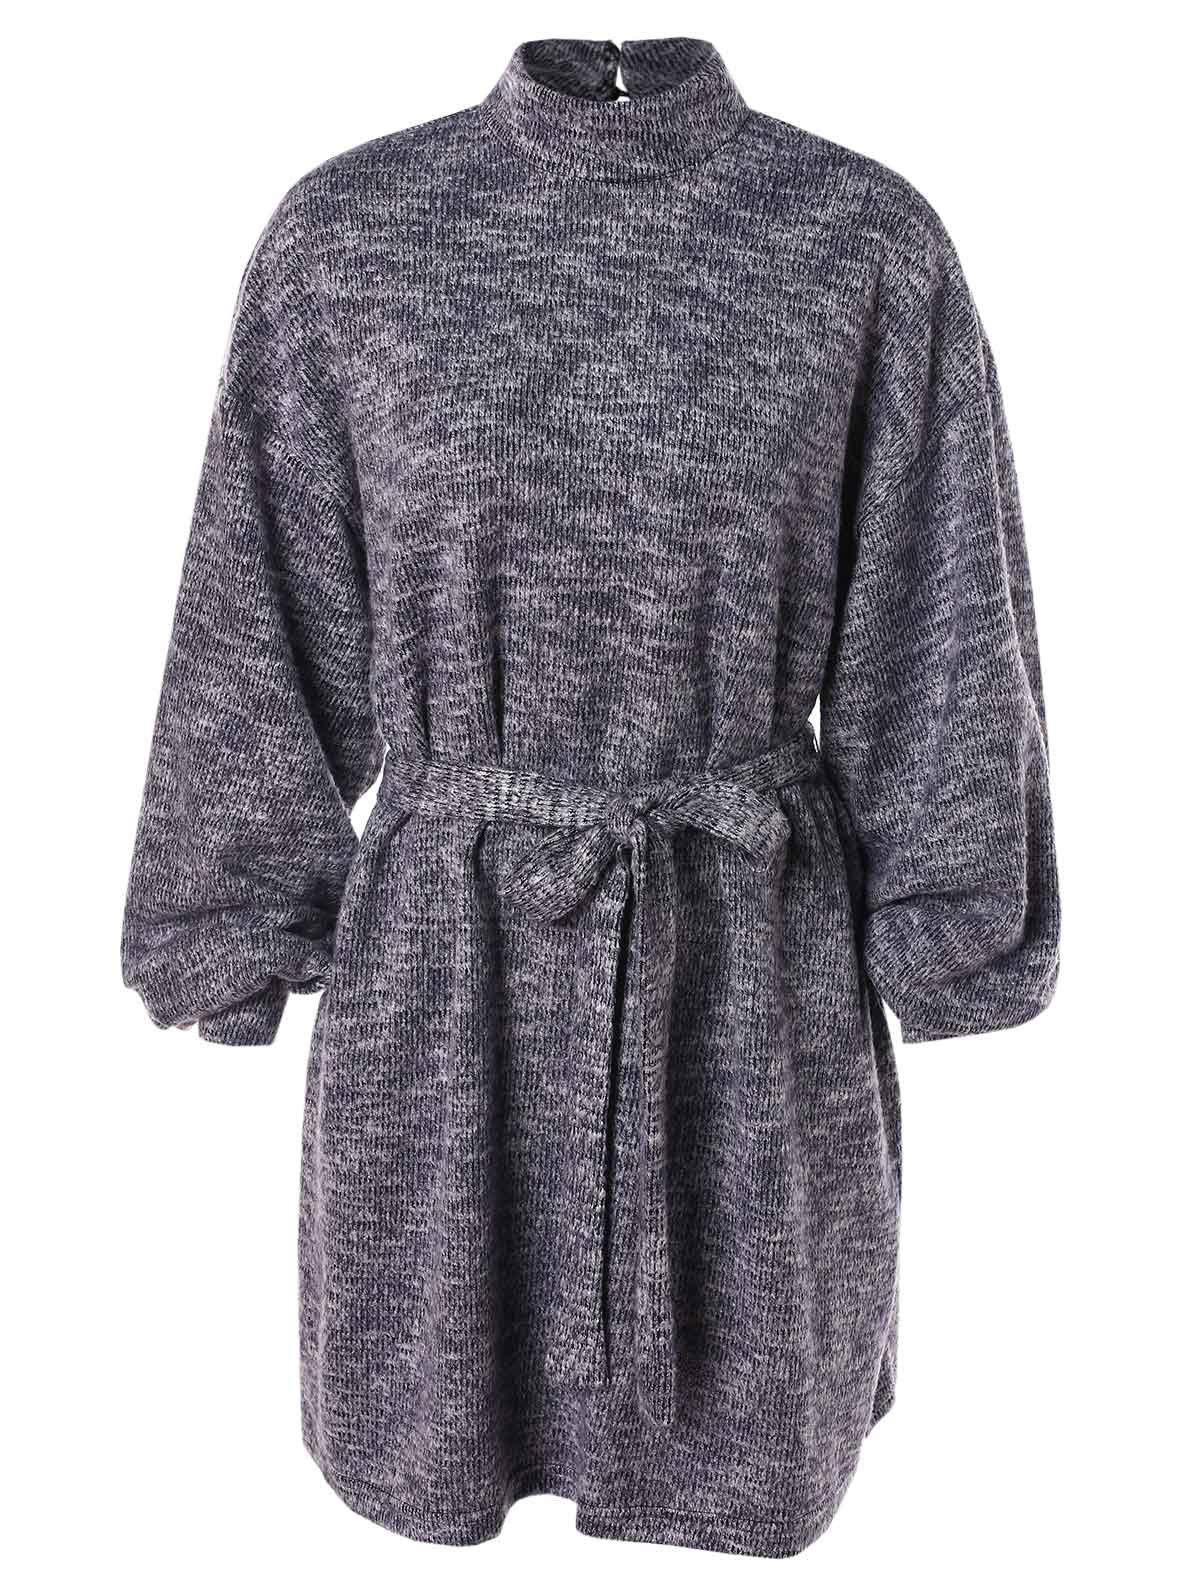 High Neck Long Sleeve Sweater Dress - SLATE BLUE M